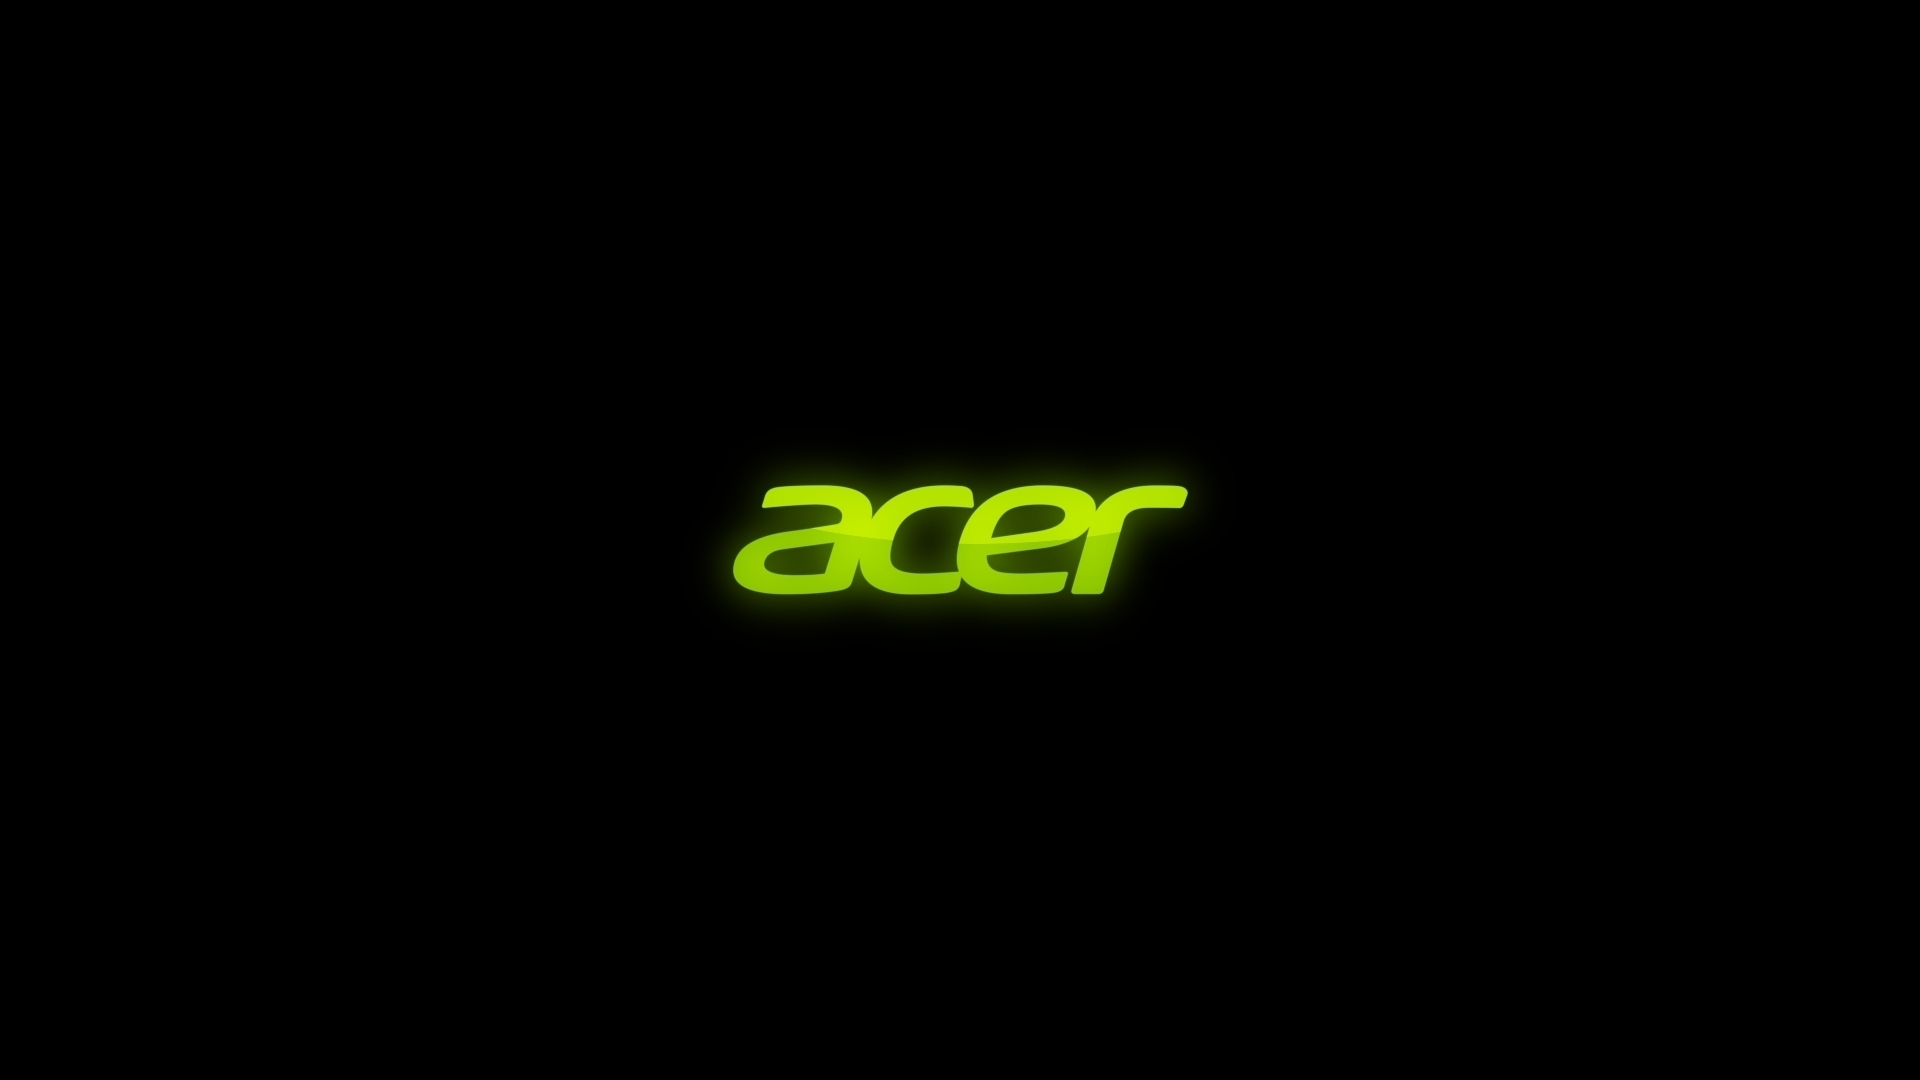 1920x1080 Acer on black desktop PC and Mac wallpaper